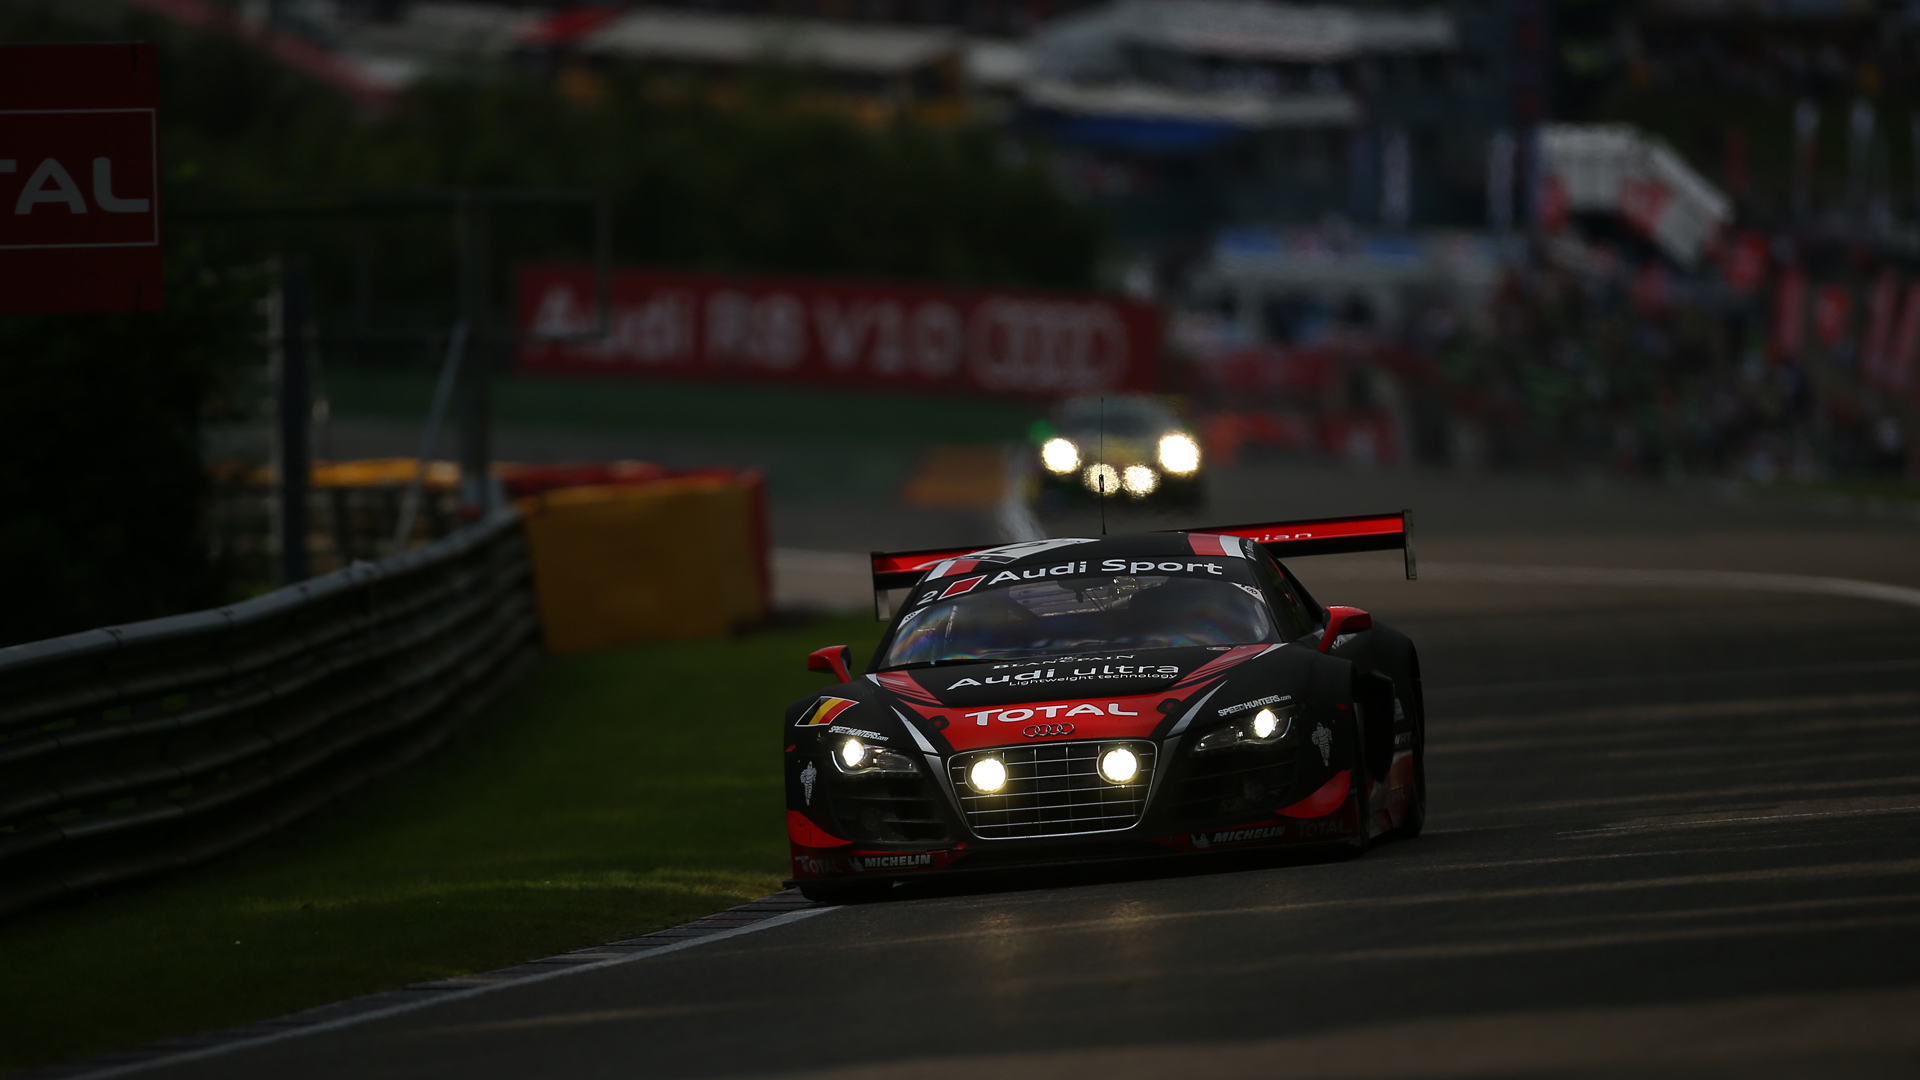 Audi Sport Night Race Wallpaper